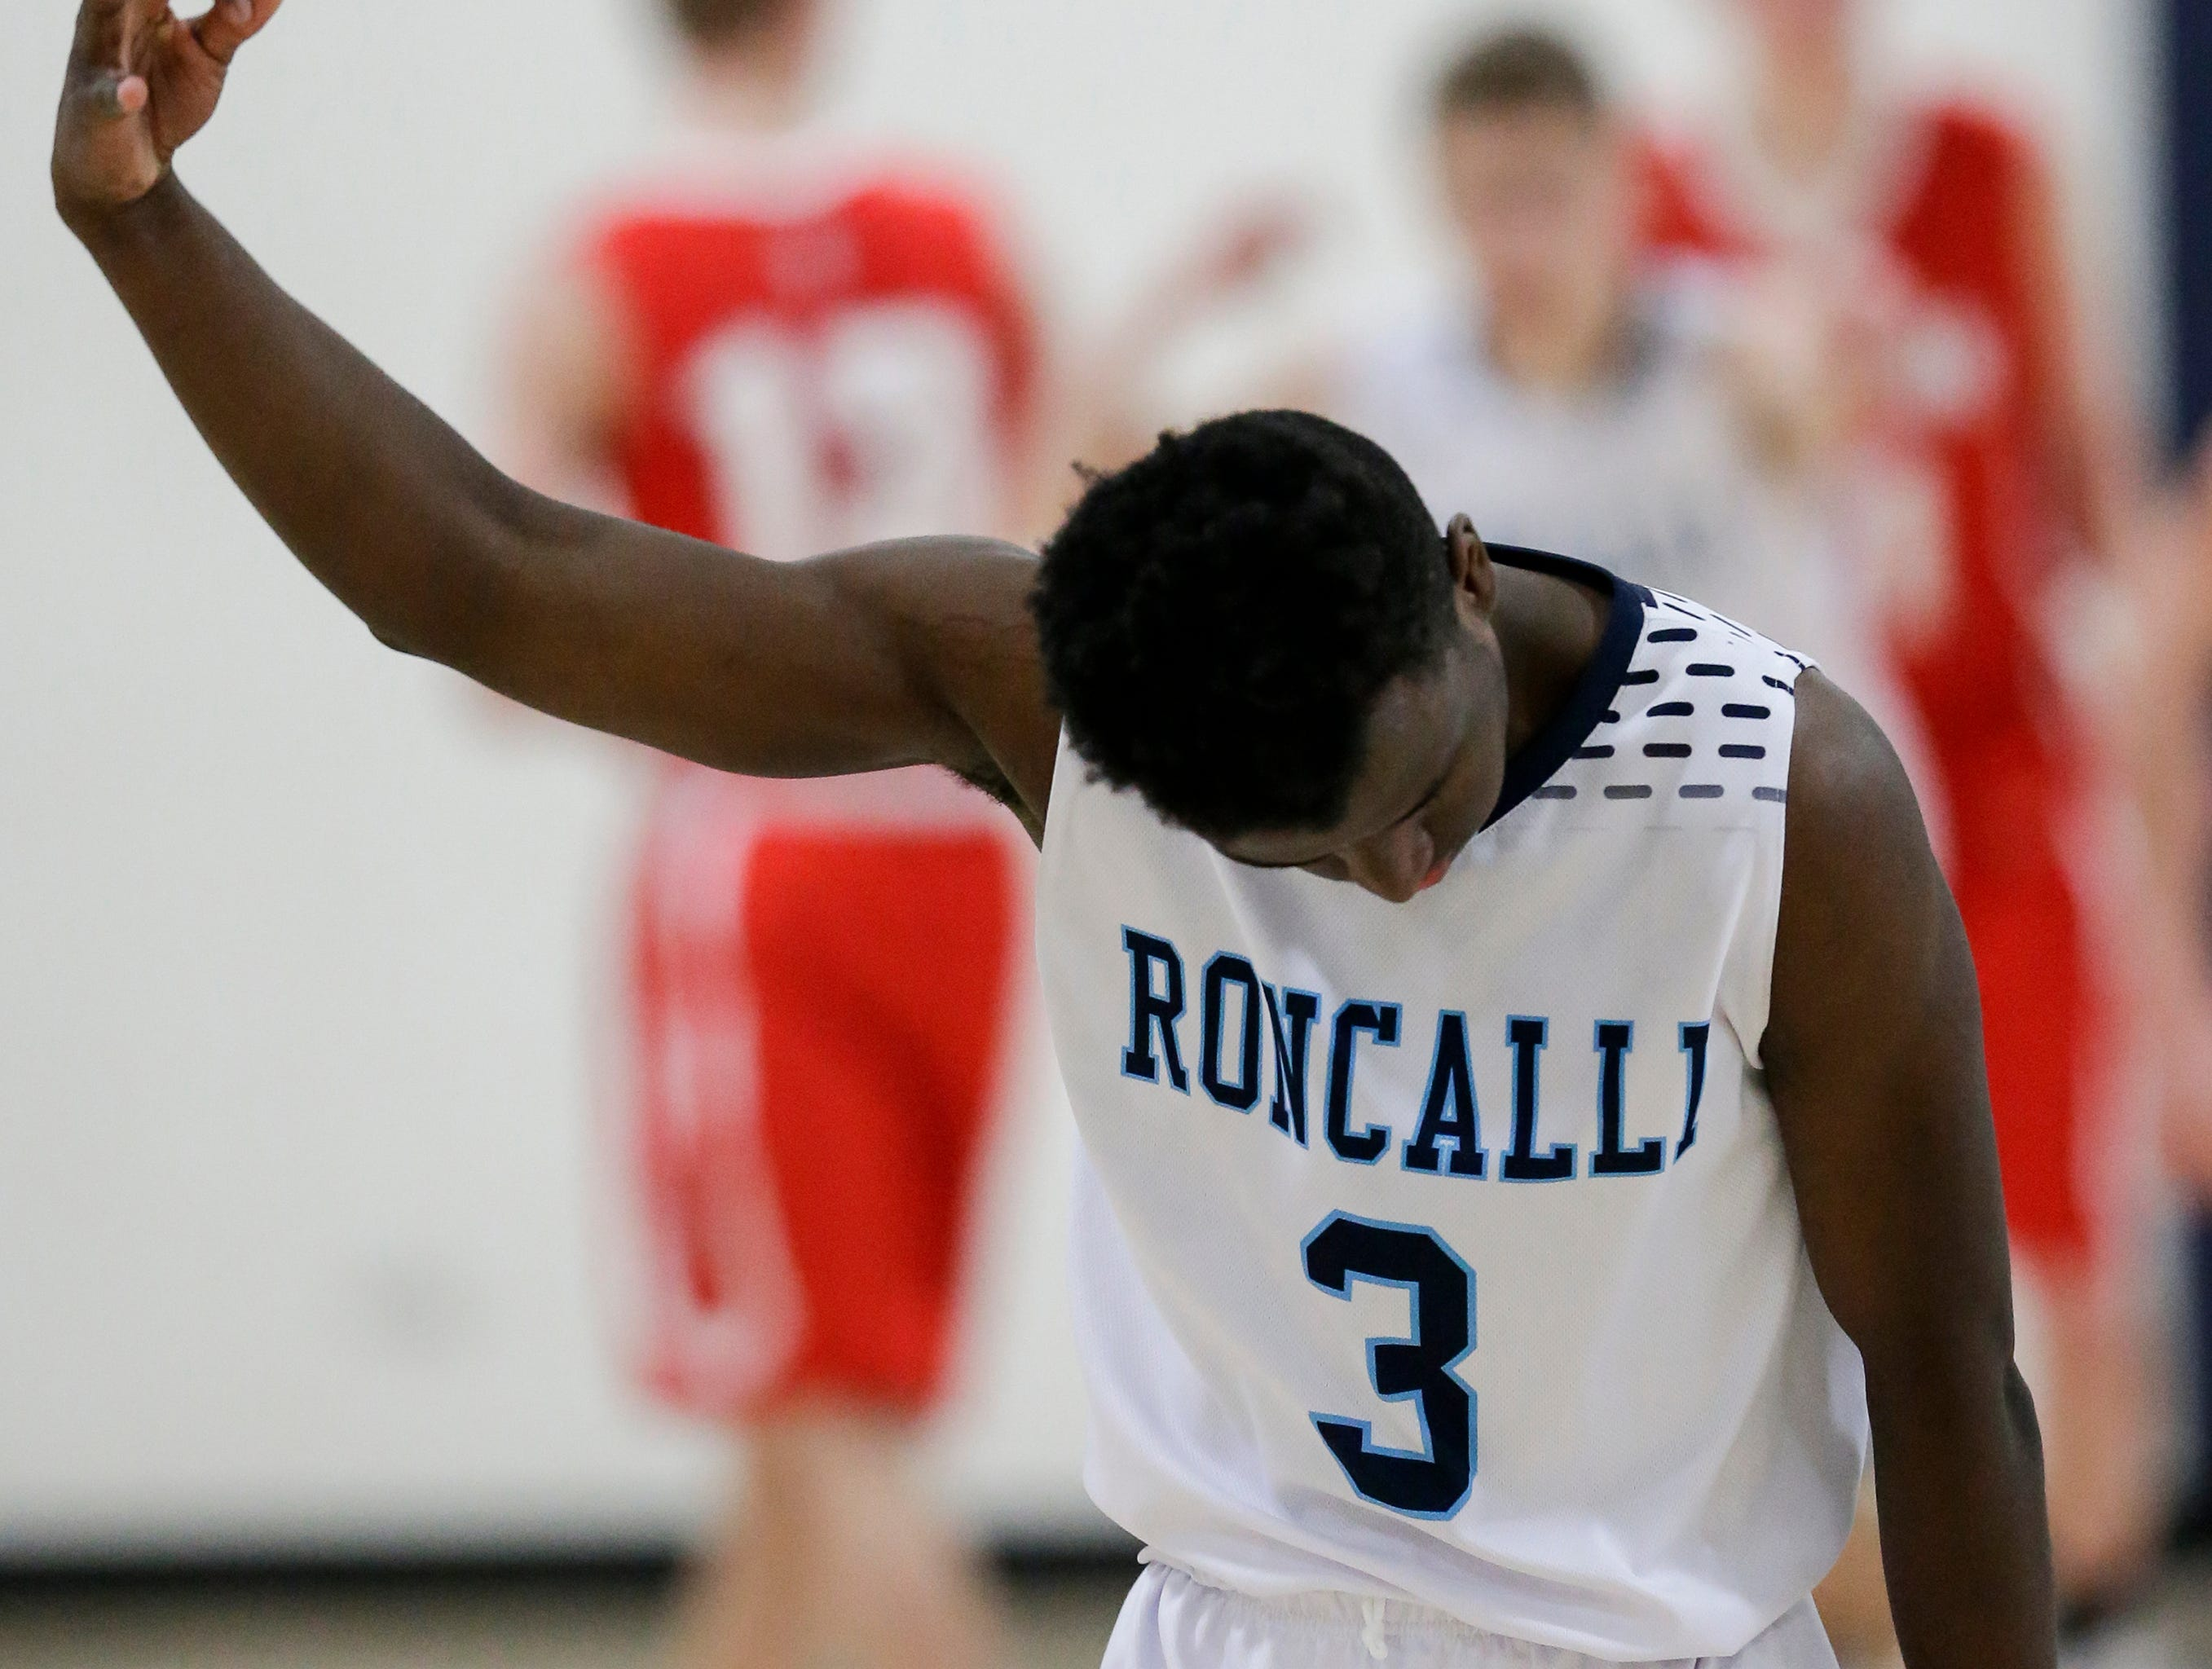 Roncalli's Chombi Lambert reacts after hitting a three point shot to further their lead against Manitowoc Lutheran during a WIAA Division 4 regional semifinal game at Roncalli High School Friday, March 1, 2019, in Manitowoc, Wis. Joshua Clark/USA TODAY NETWORK-Wisconsin